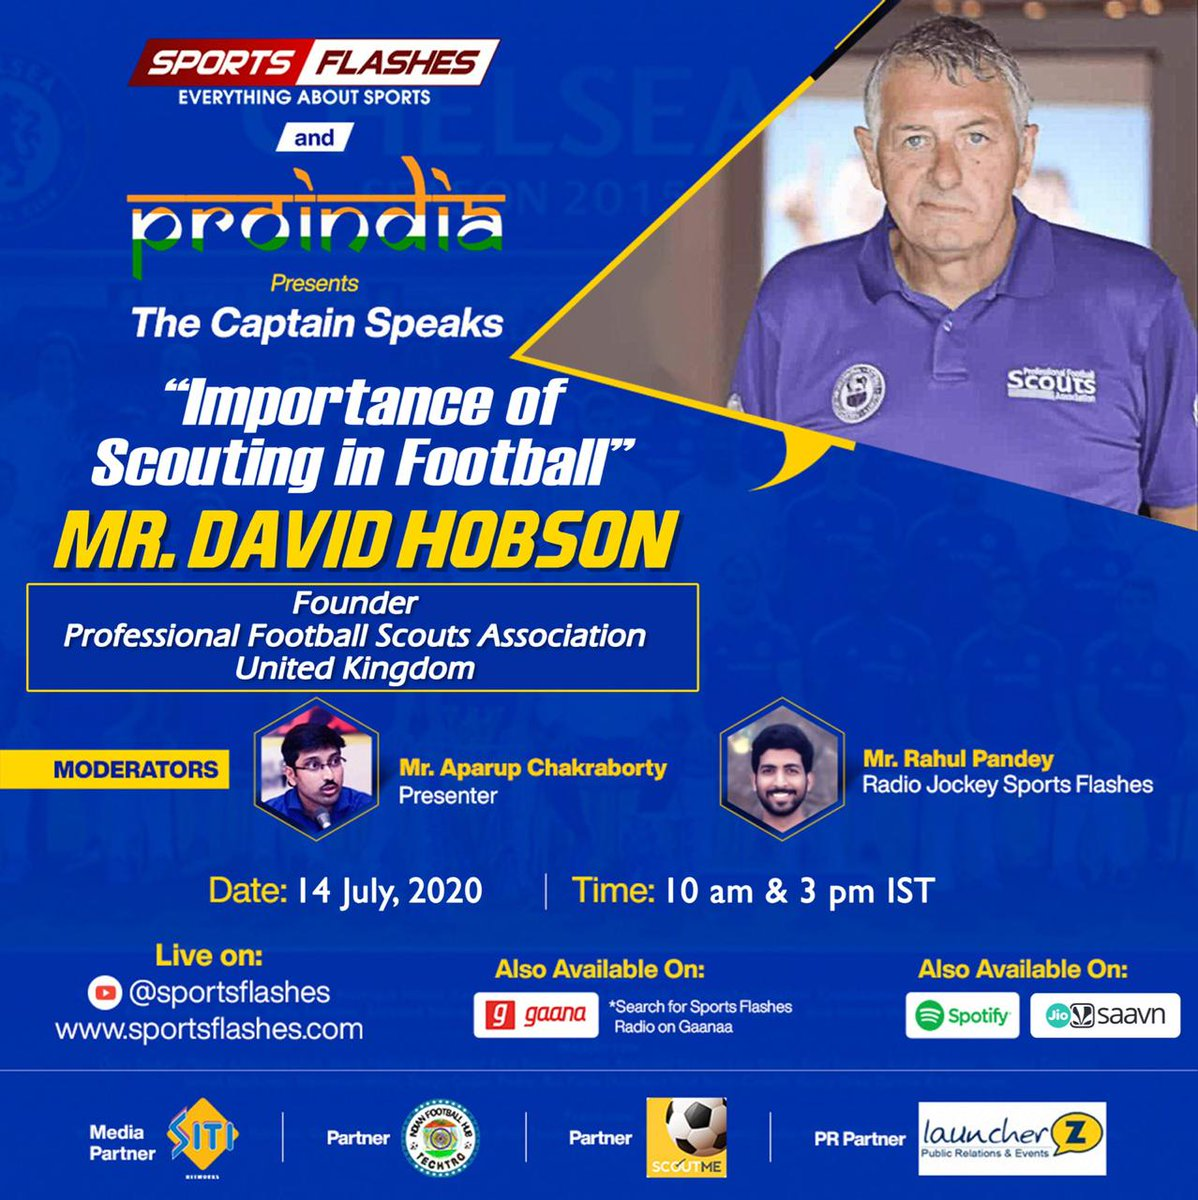 #ProIndia and Sports Flashes brings you, 'The Captain Speaks'.   We will be joined by Mr. David Hobson, founder of Professional Football Scouts Association and former scout at @ManUtd, @OfficialBWFC and @Rovers to talk about his job. #football #PremierLeague #FIFA #UEFA https://t.co/lwF07zBx0s